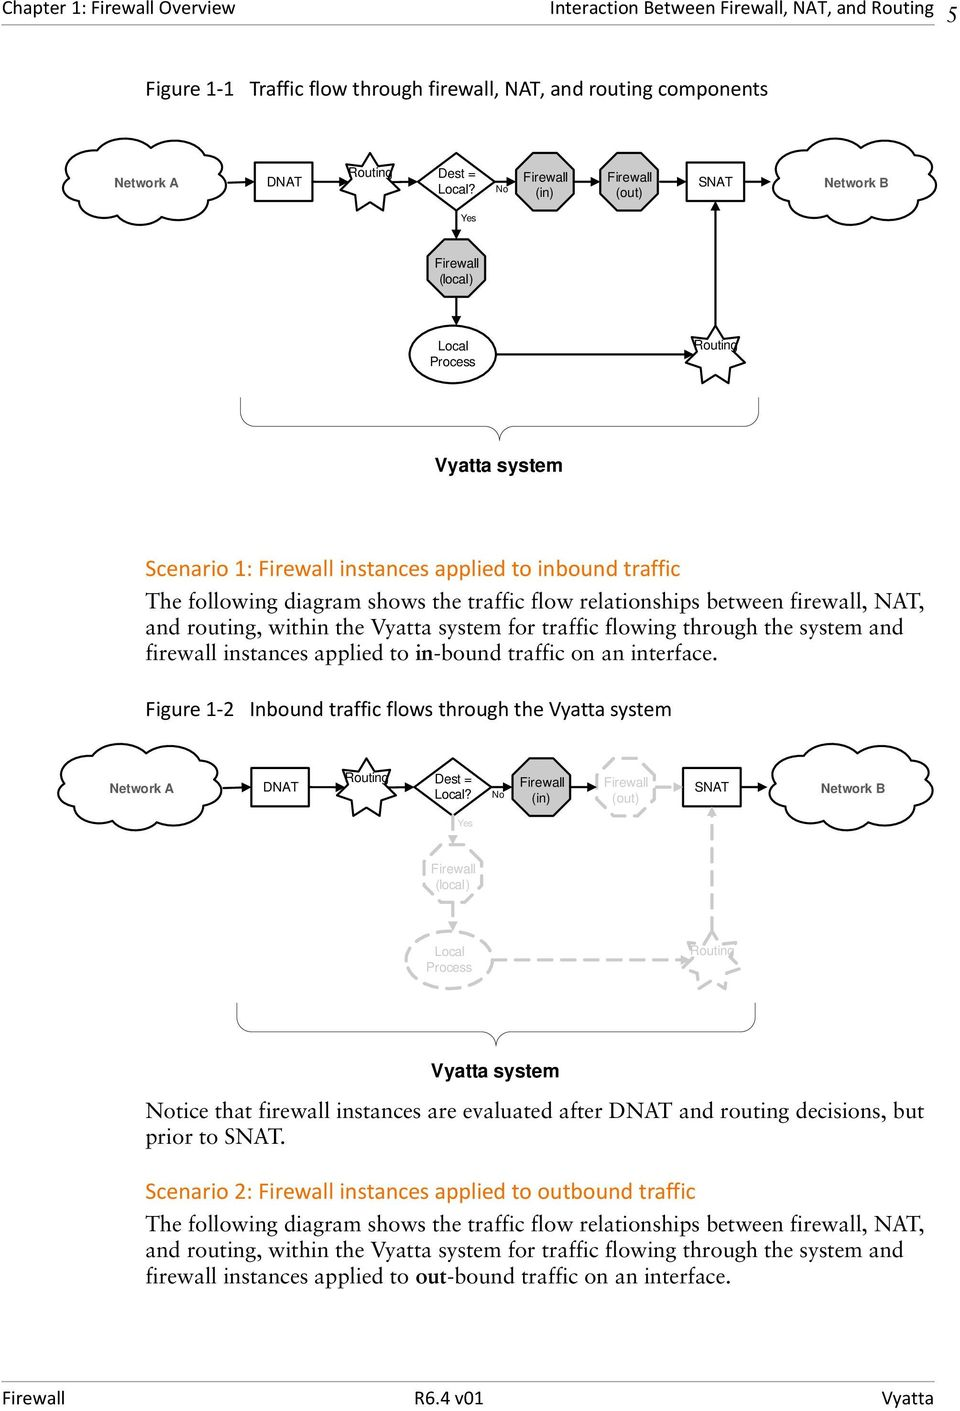 traffic flow relationships between firewall, NAT, and routing, within the Vyatta system for traffic flowing through the system and firewall instances applied to in-bound traffic on an interface.